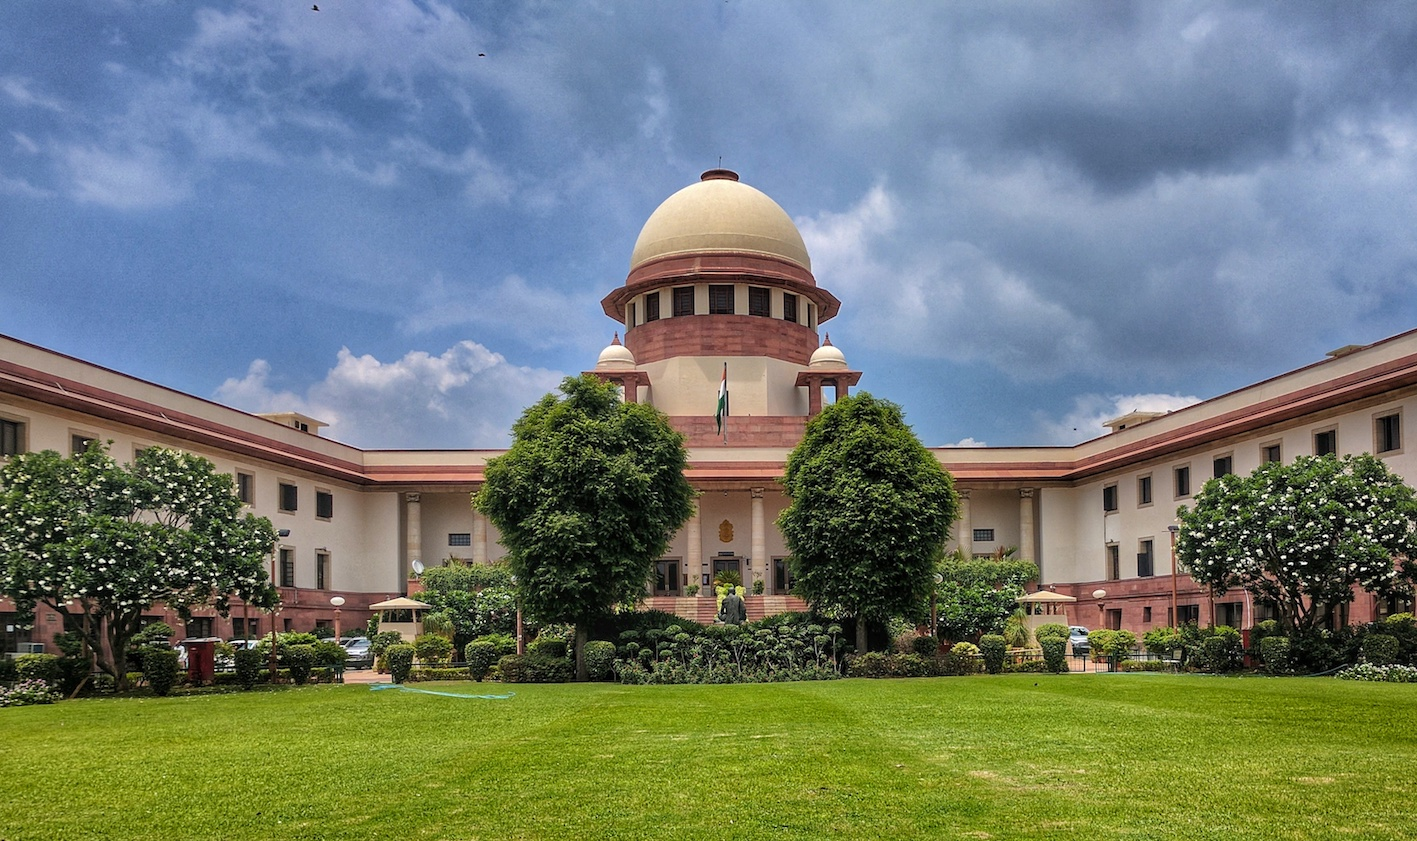 Supreme Court of India Hiring Law Clerk-cum-Research Assistants - Apply now